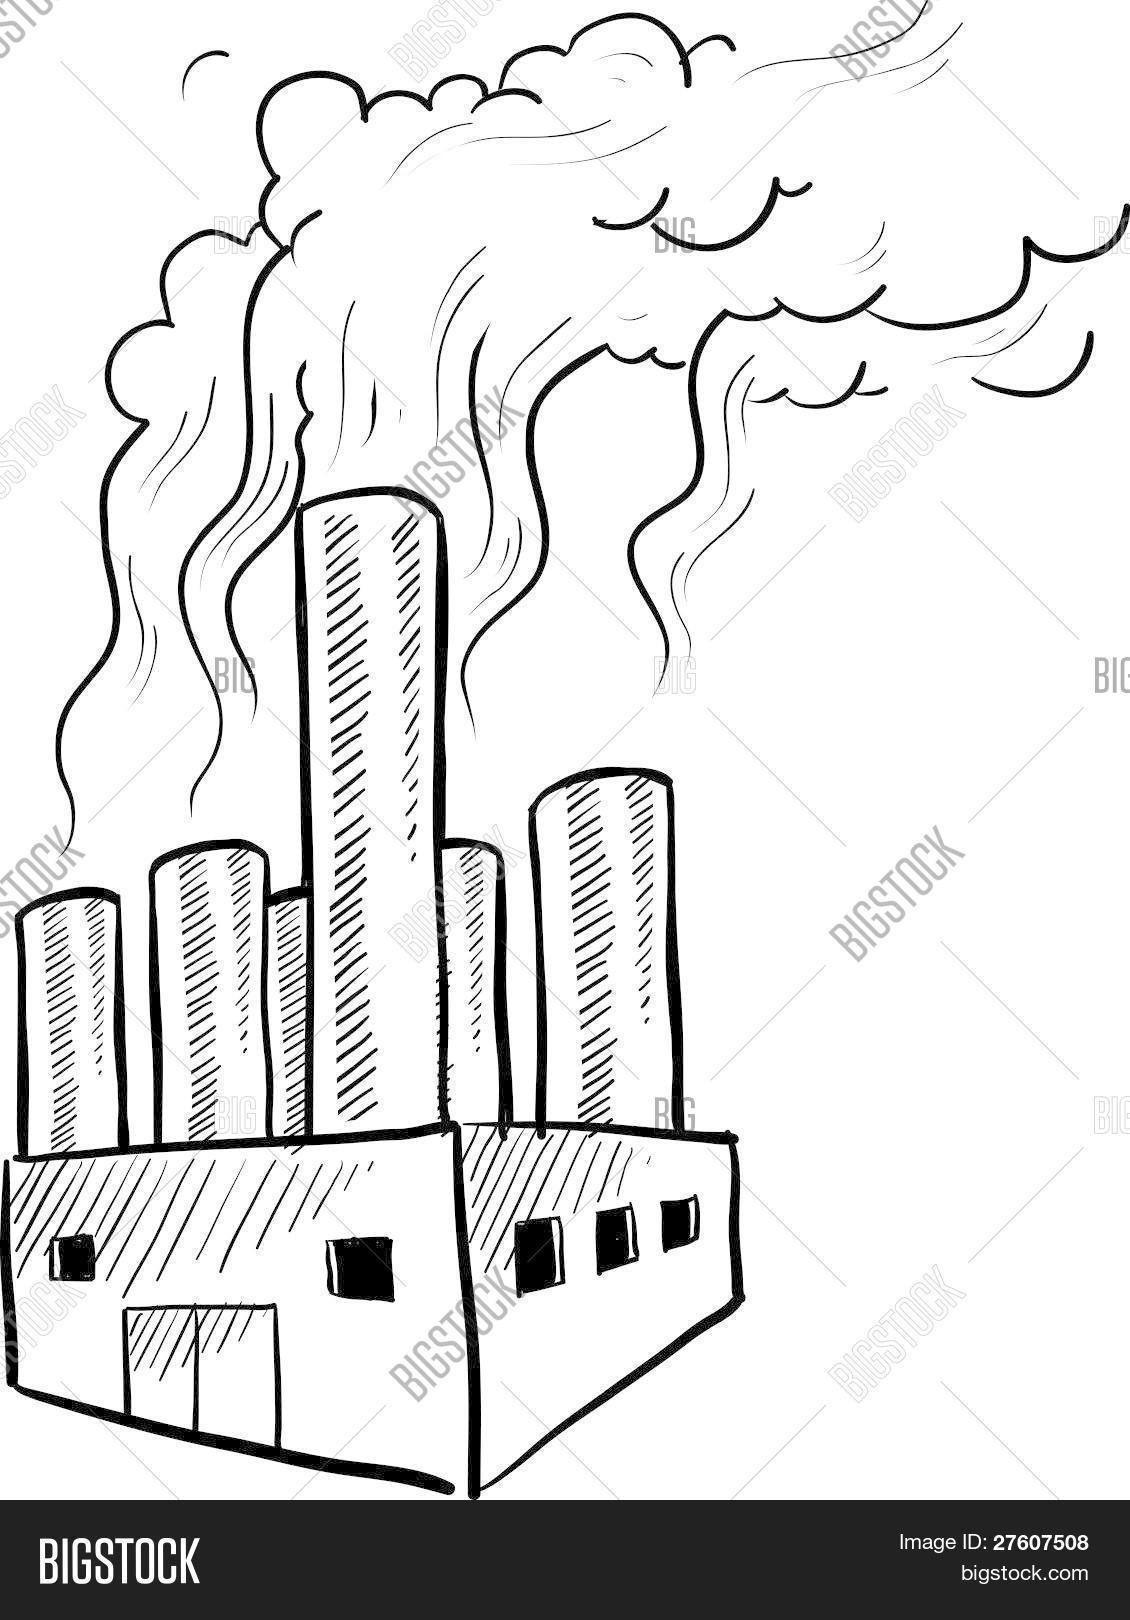 Factory Pollution Sketch Vector Amp Photo